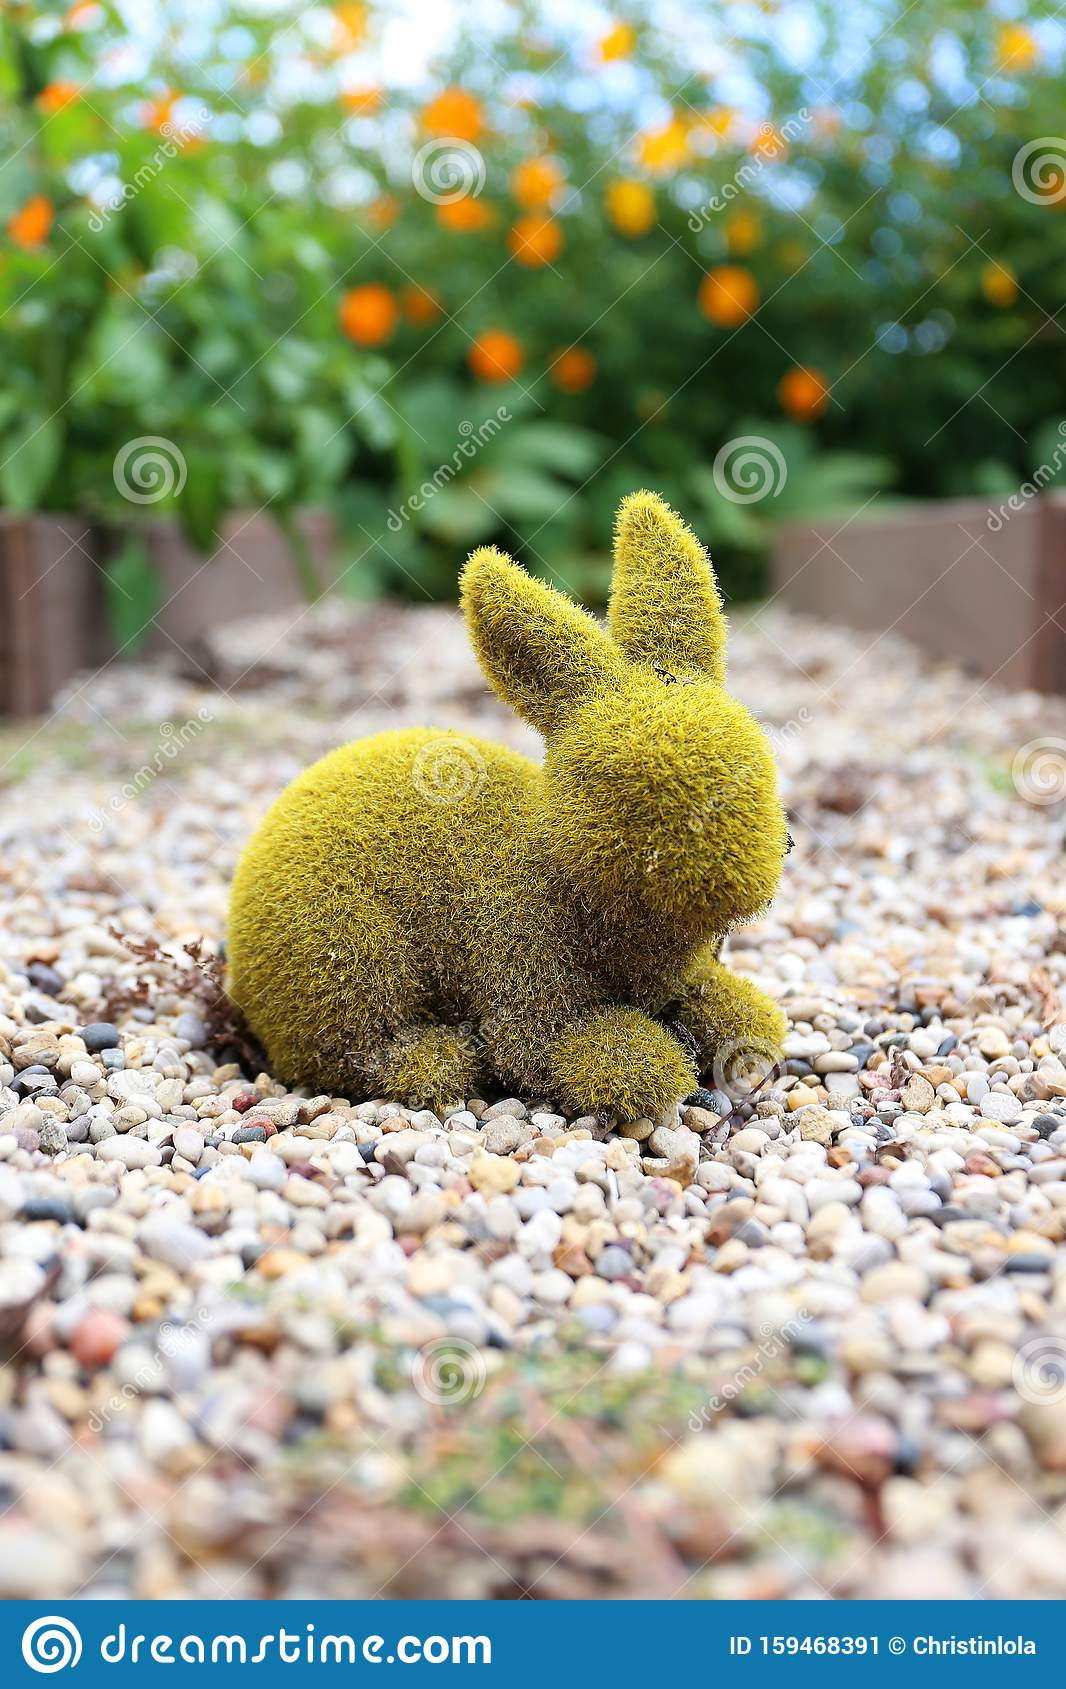 10 Ways To Decorate With Green Moss: Green Moss Covered Rabbit Statue Decorating Garden Of Orange Cosmo Flowers Stock Image